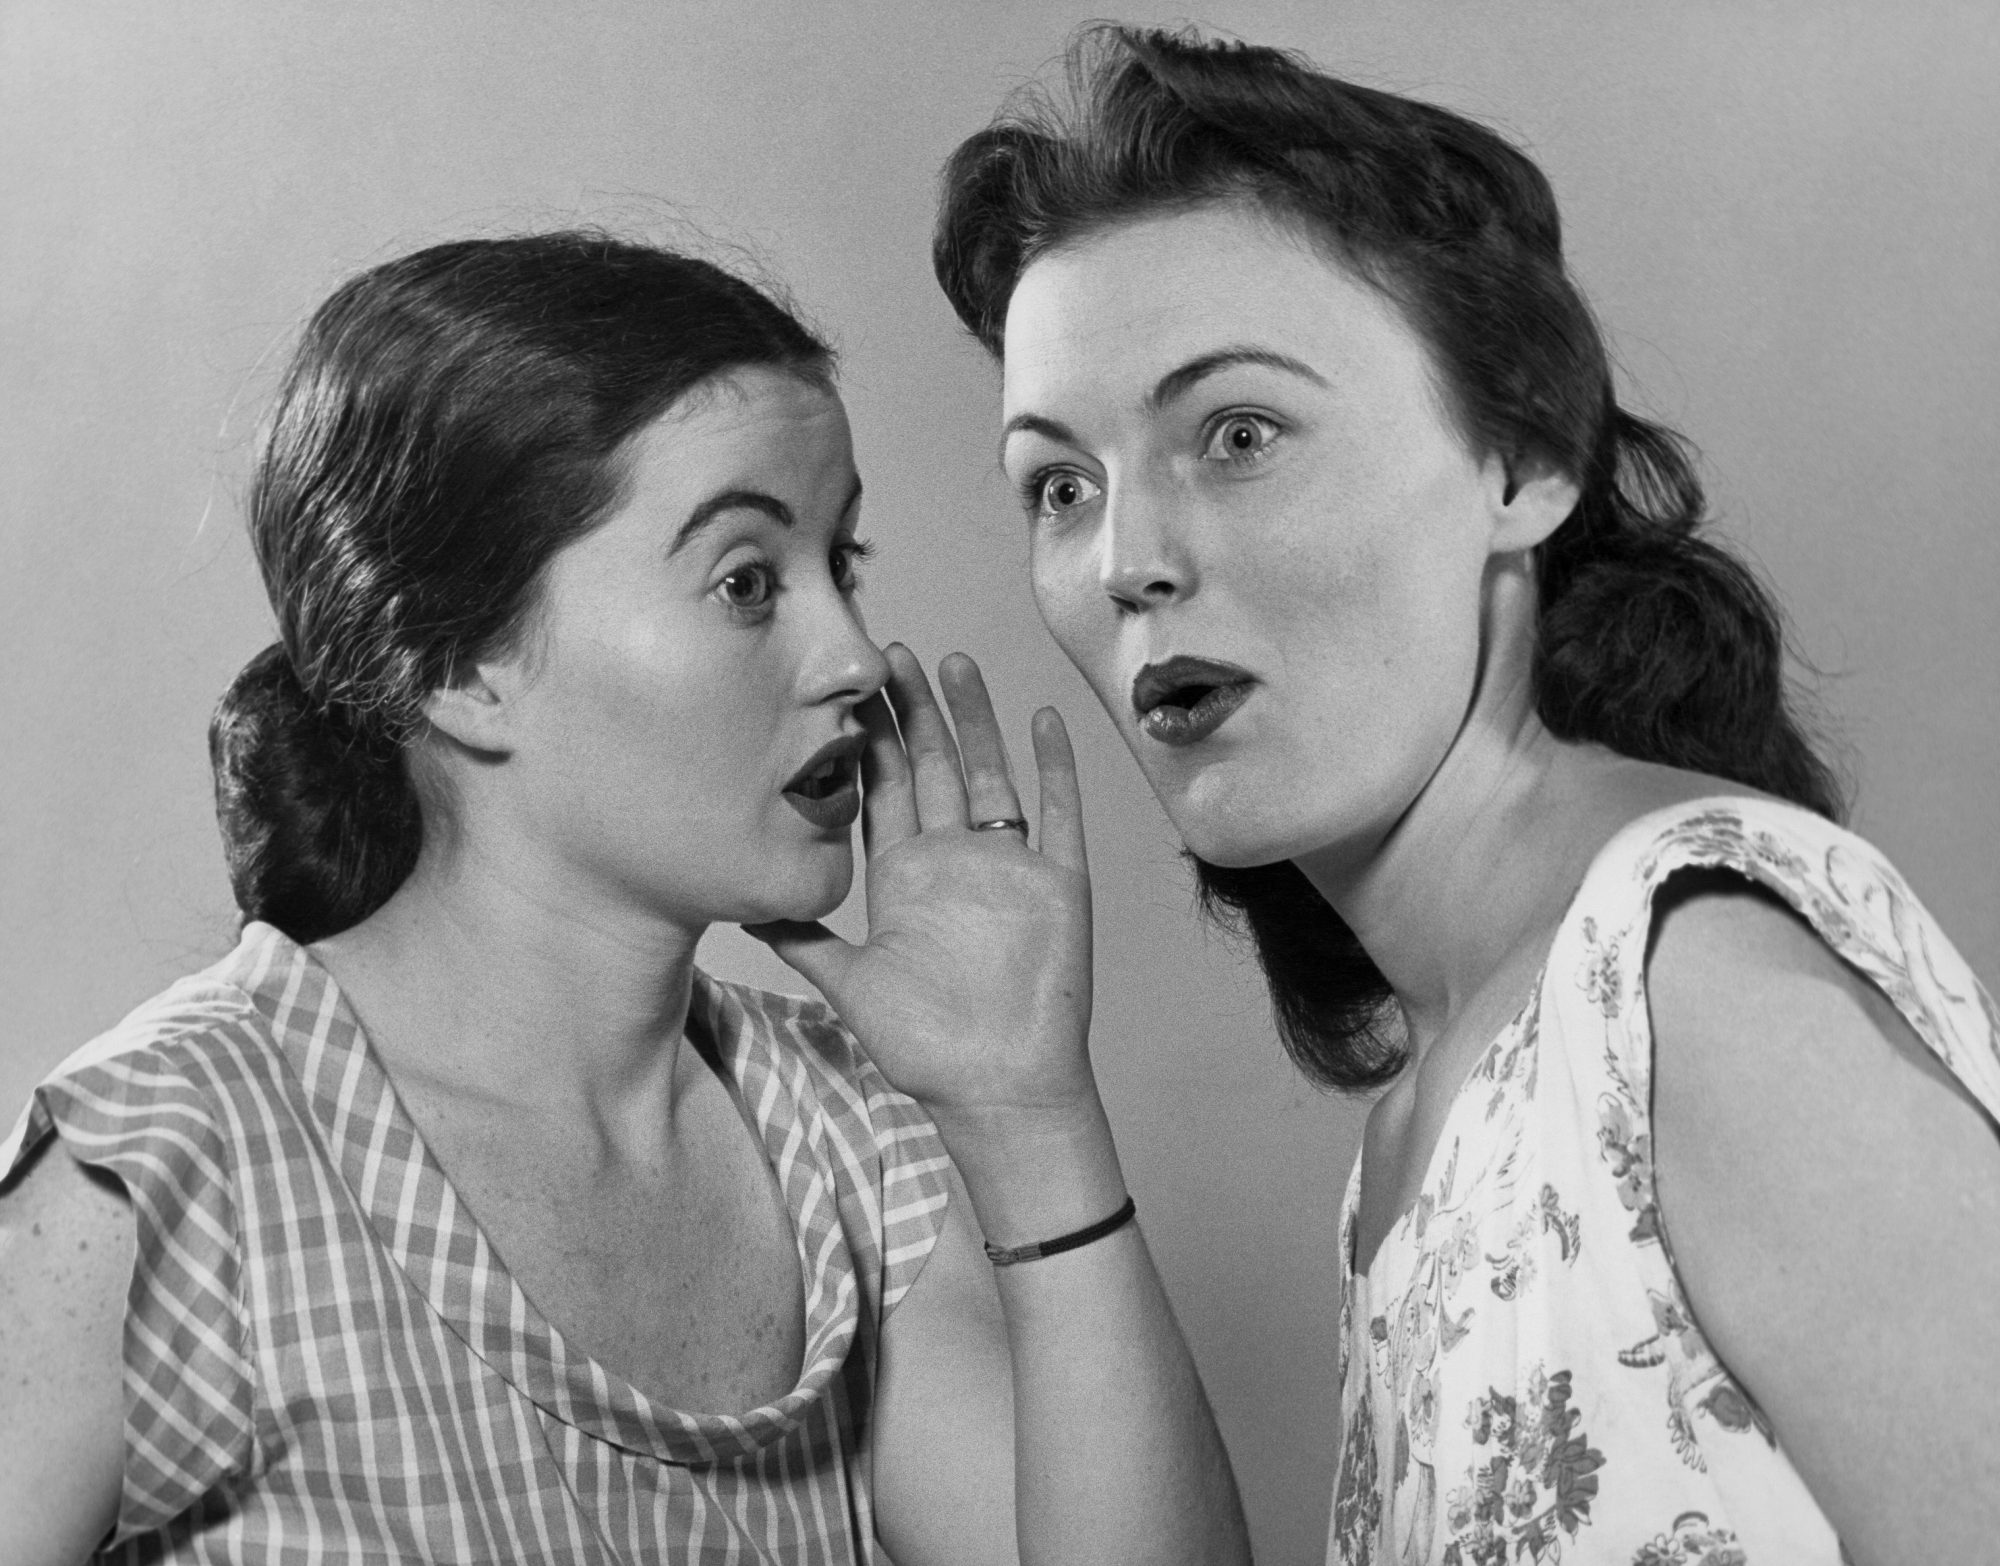 New Study Finds This Is How Much Time Each Day We Spend Gossiping